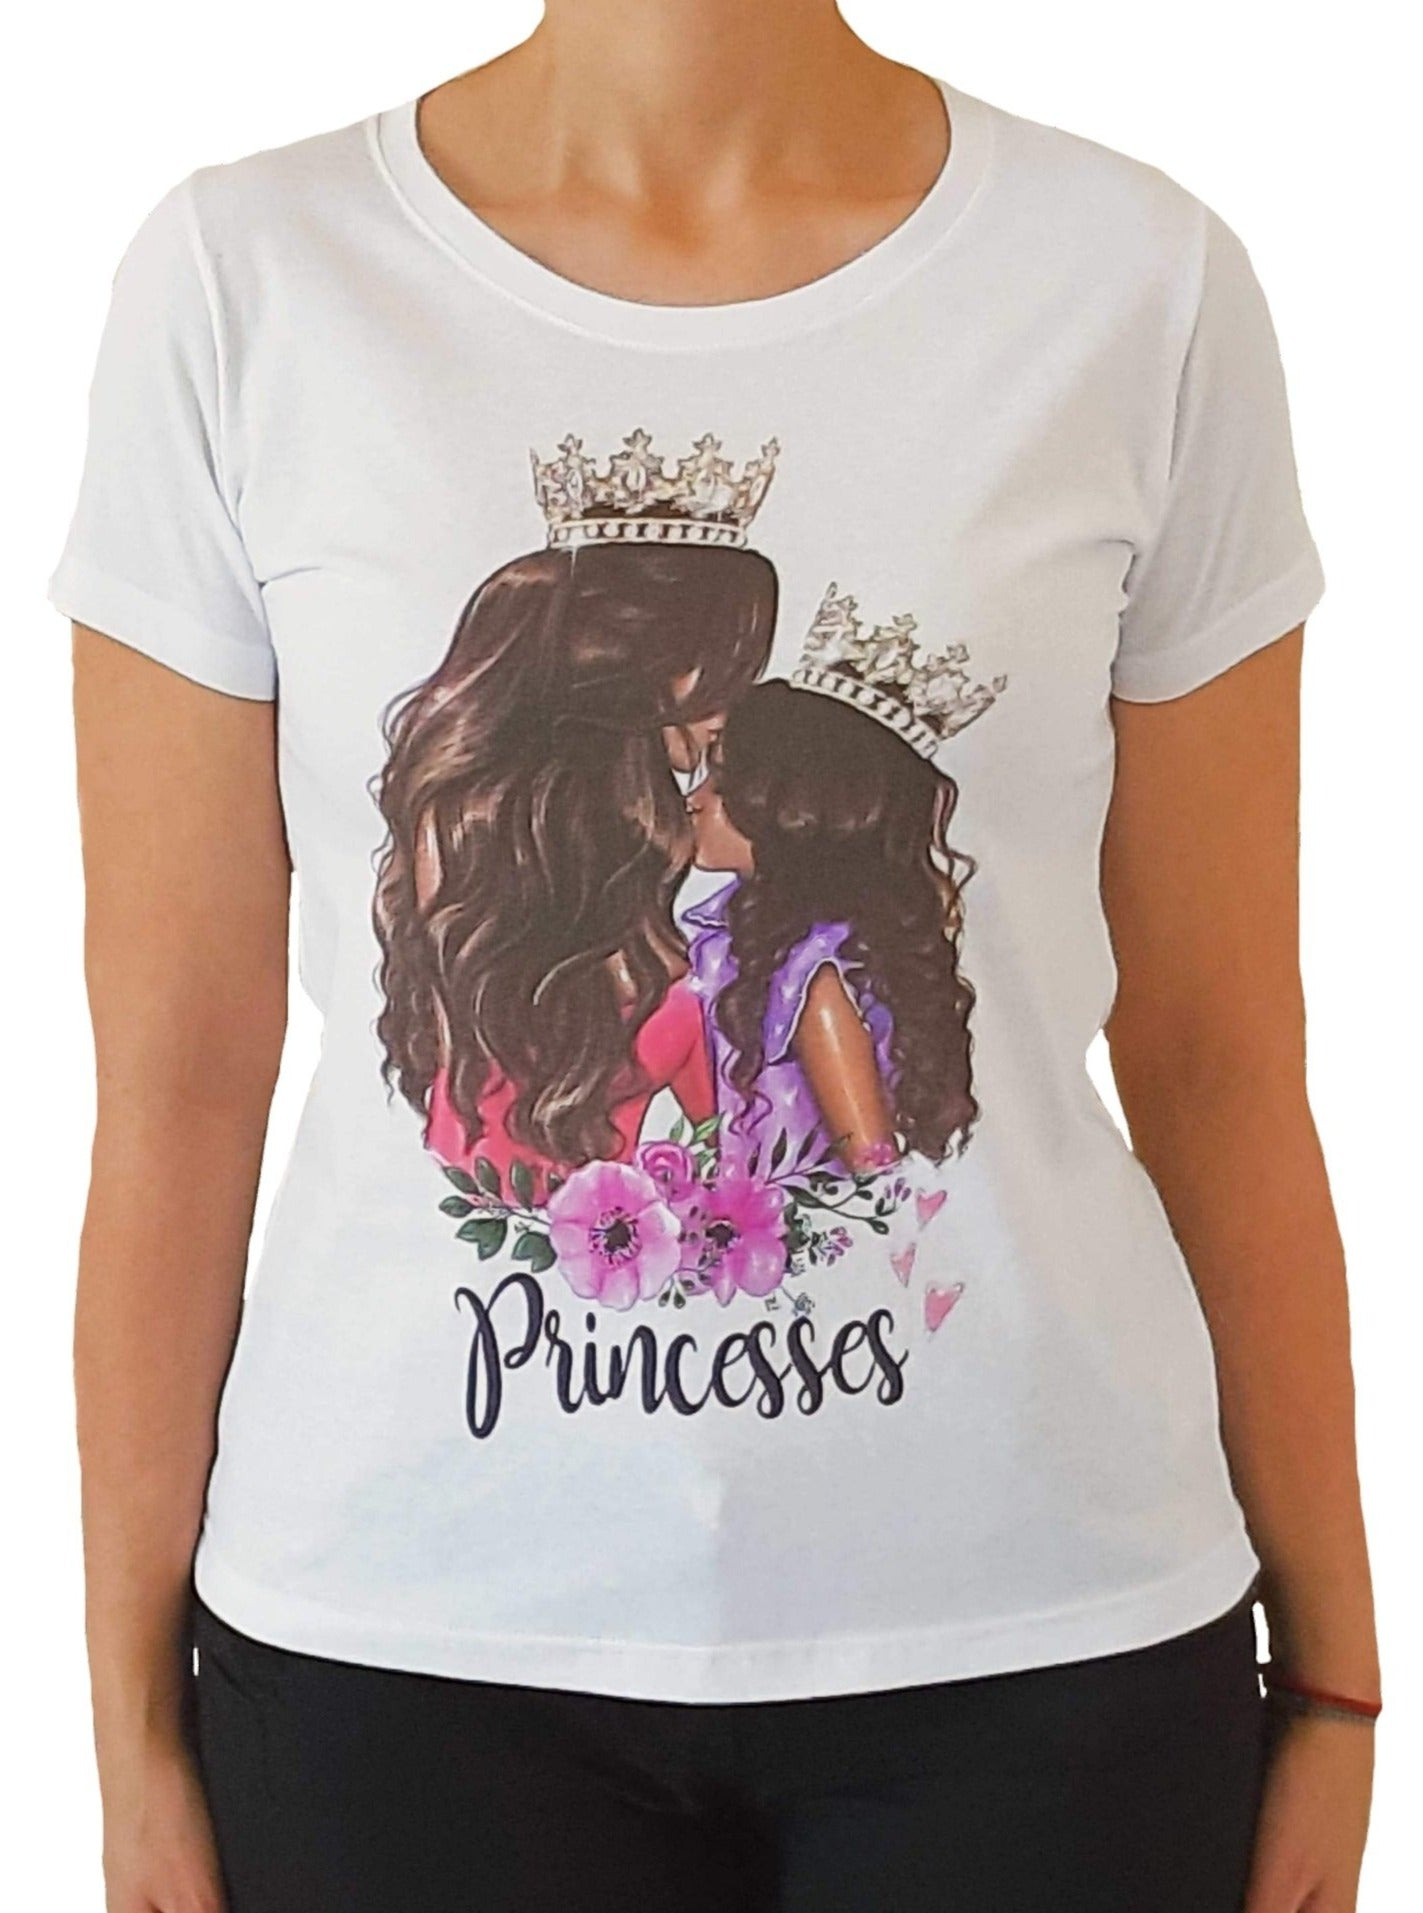 girl-wears-a-white-tshirt-with-stamp-princess-frontside